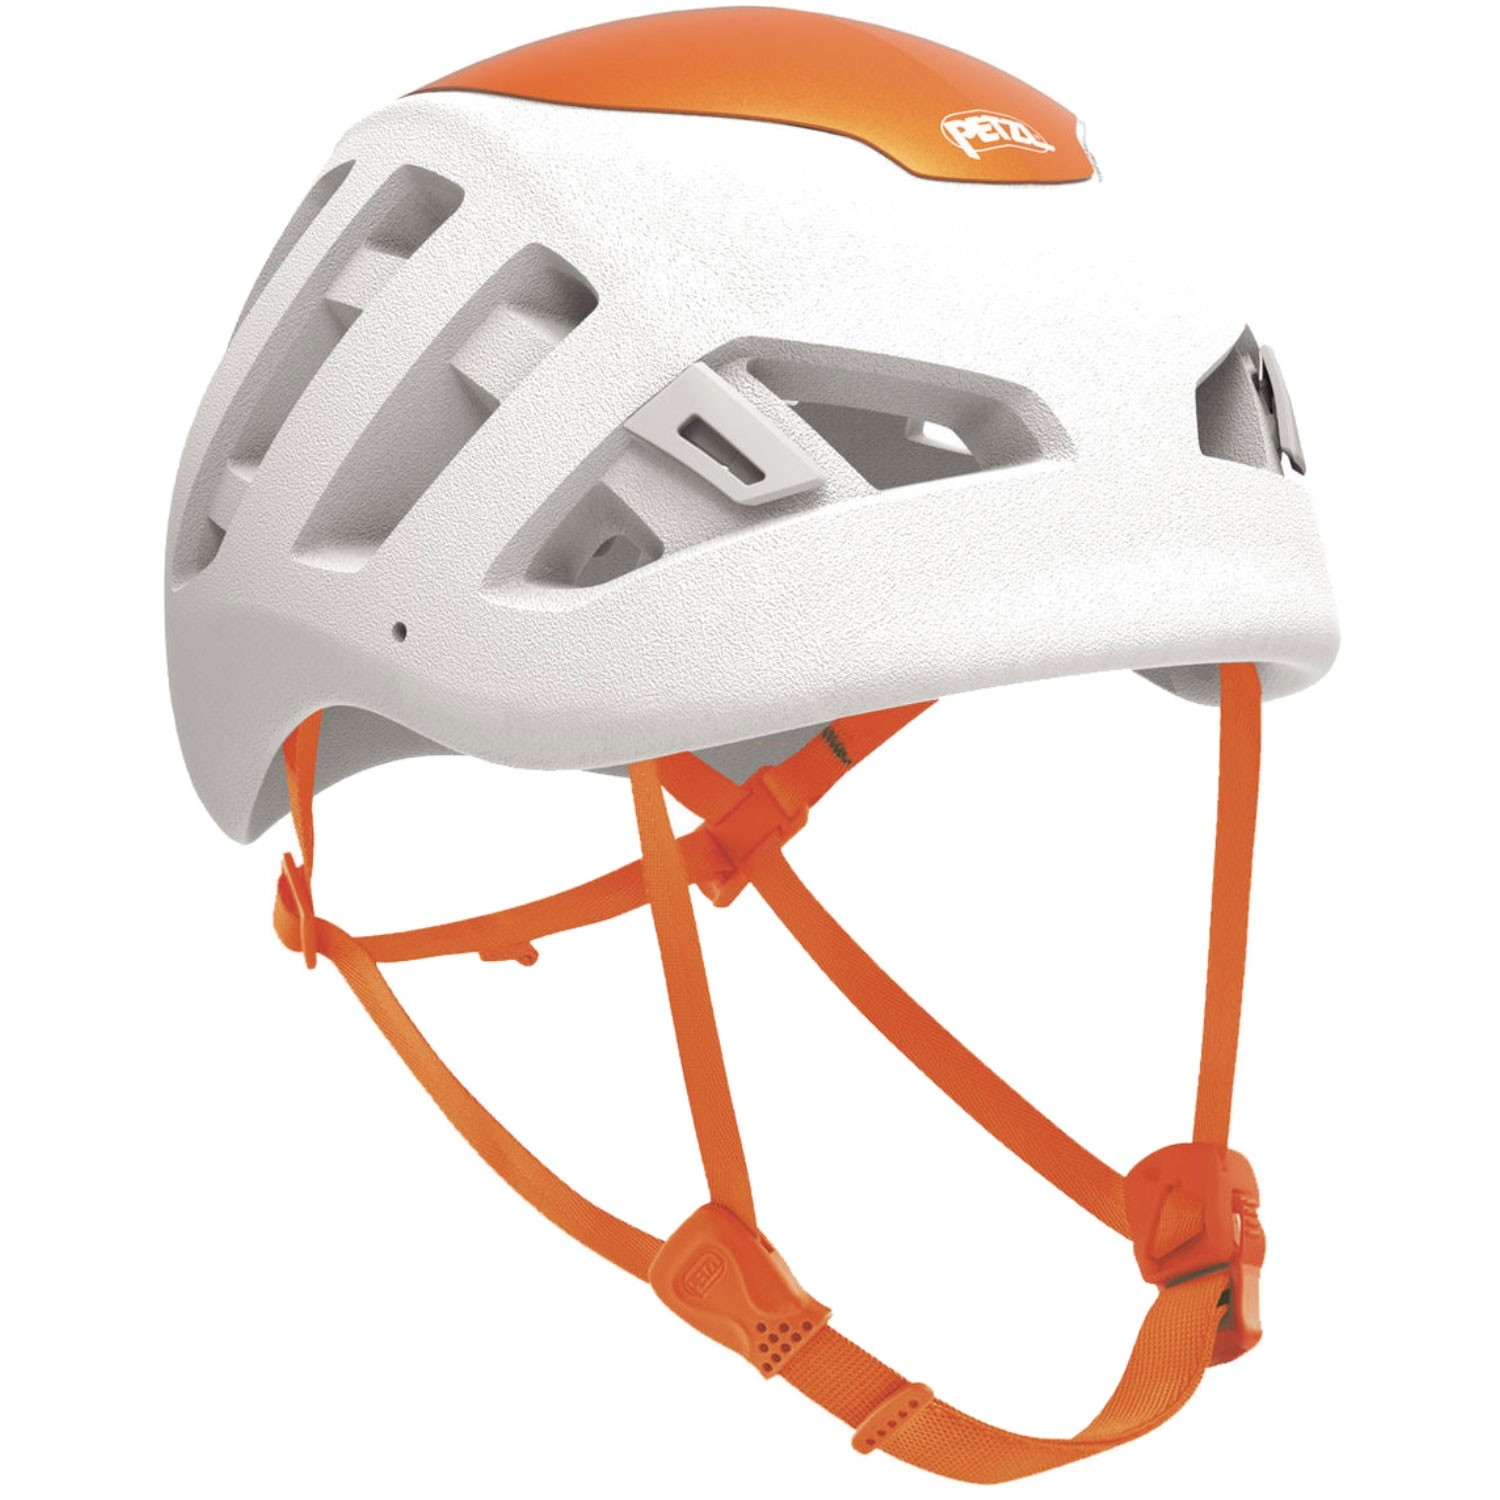 Petzl Sirocco Climbing Helmet - White/Orange